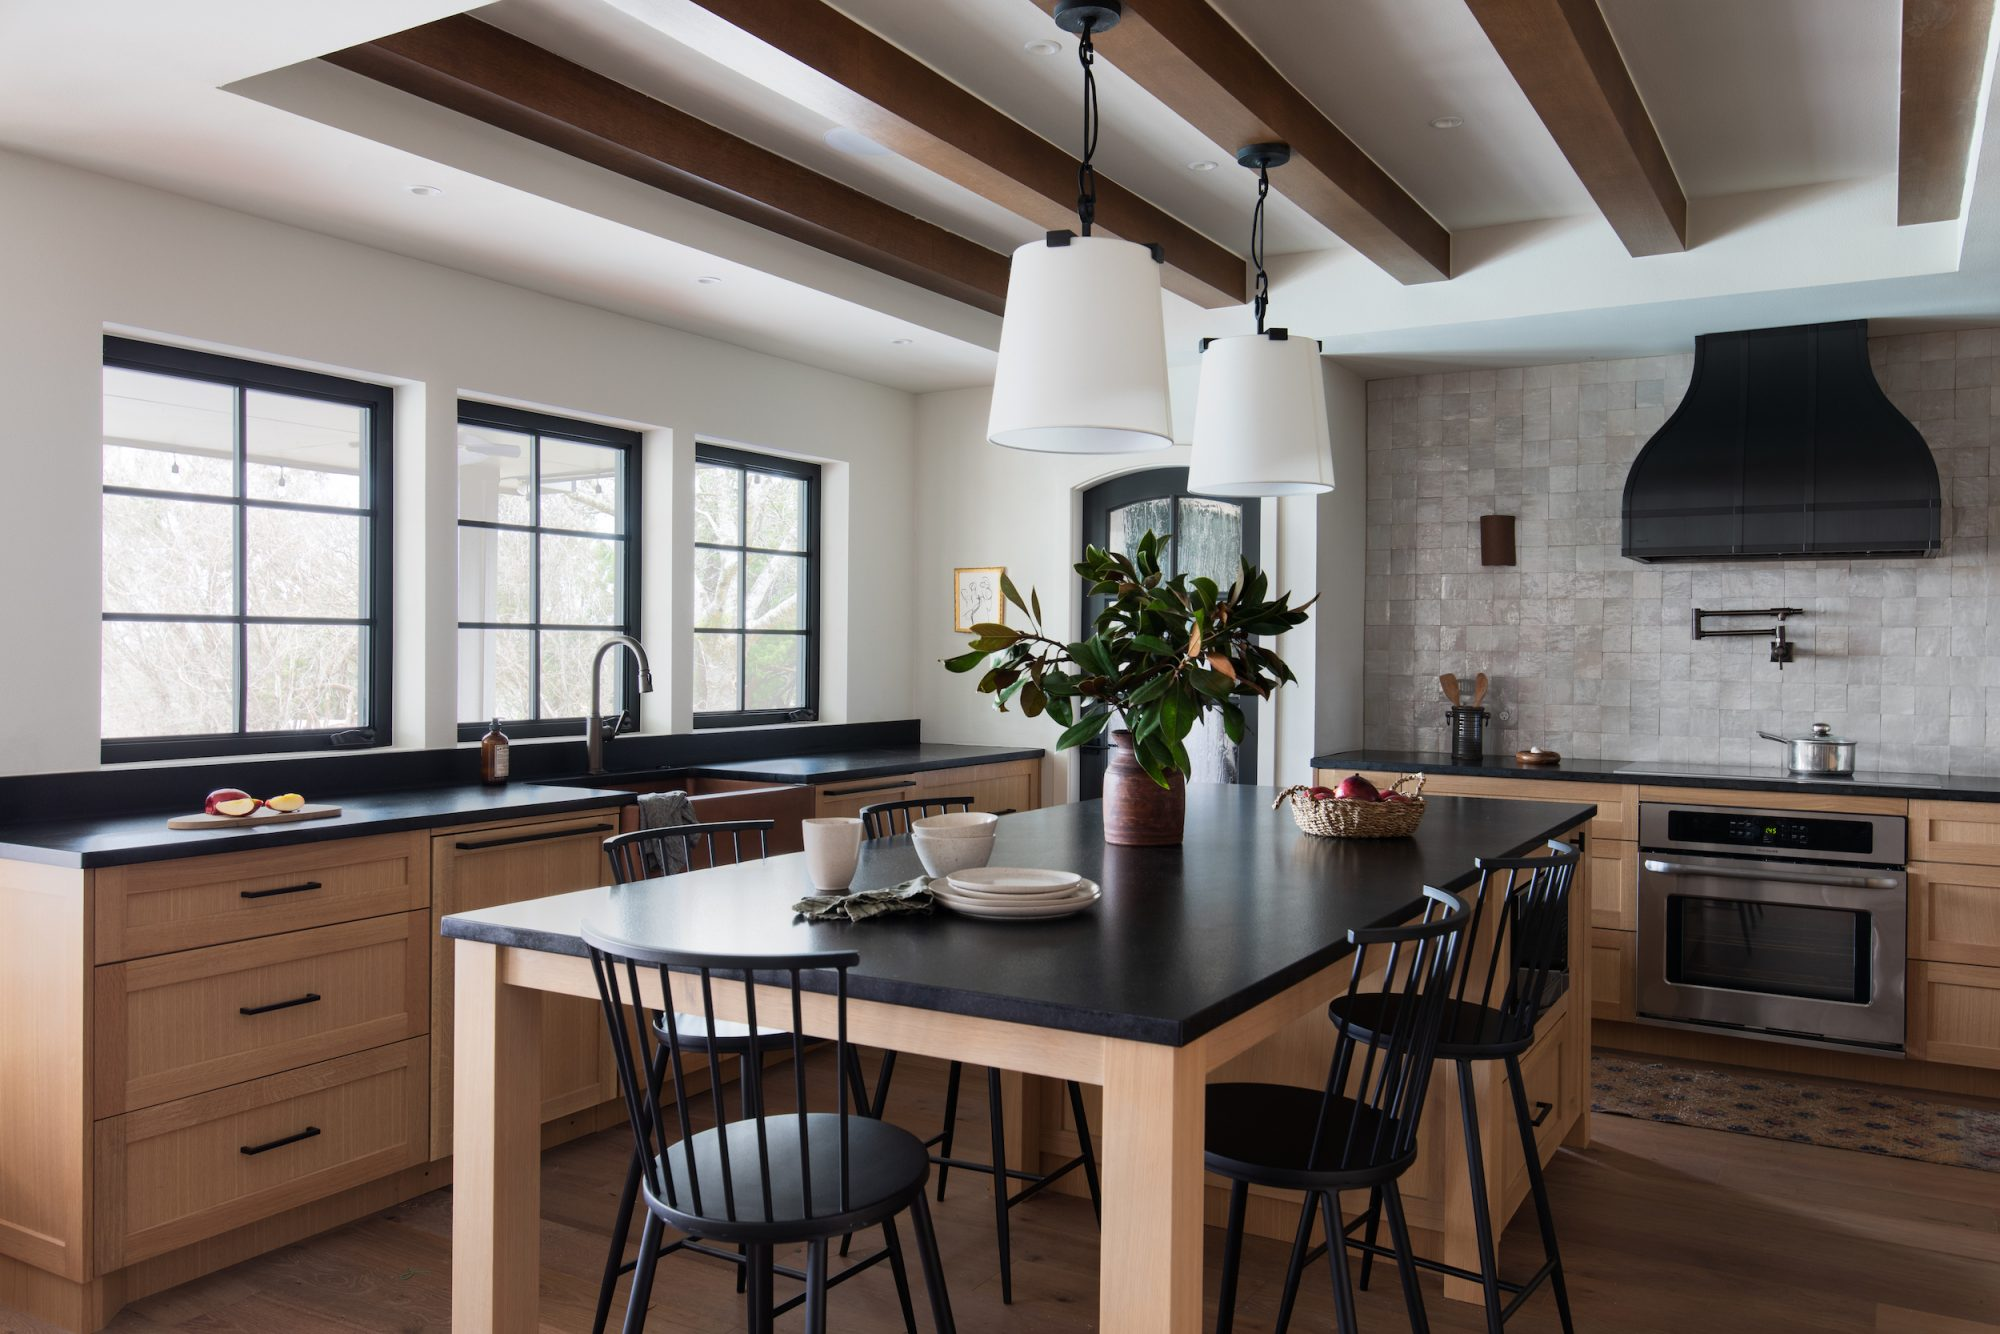 Sarah Stacey, Kitchen Makeover in wood tones and black